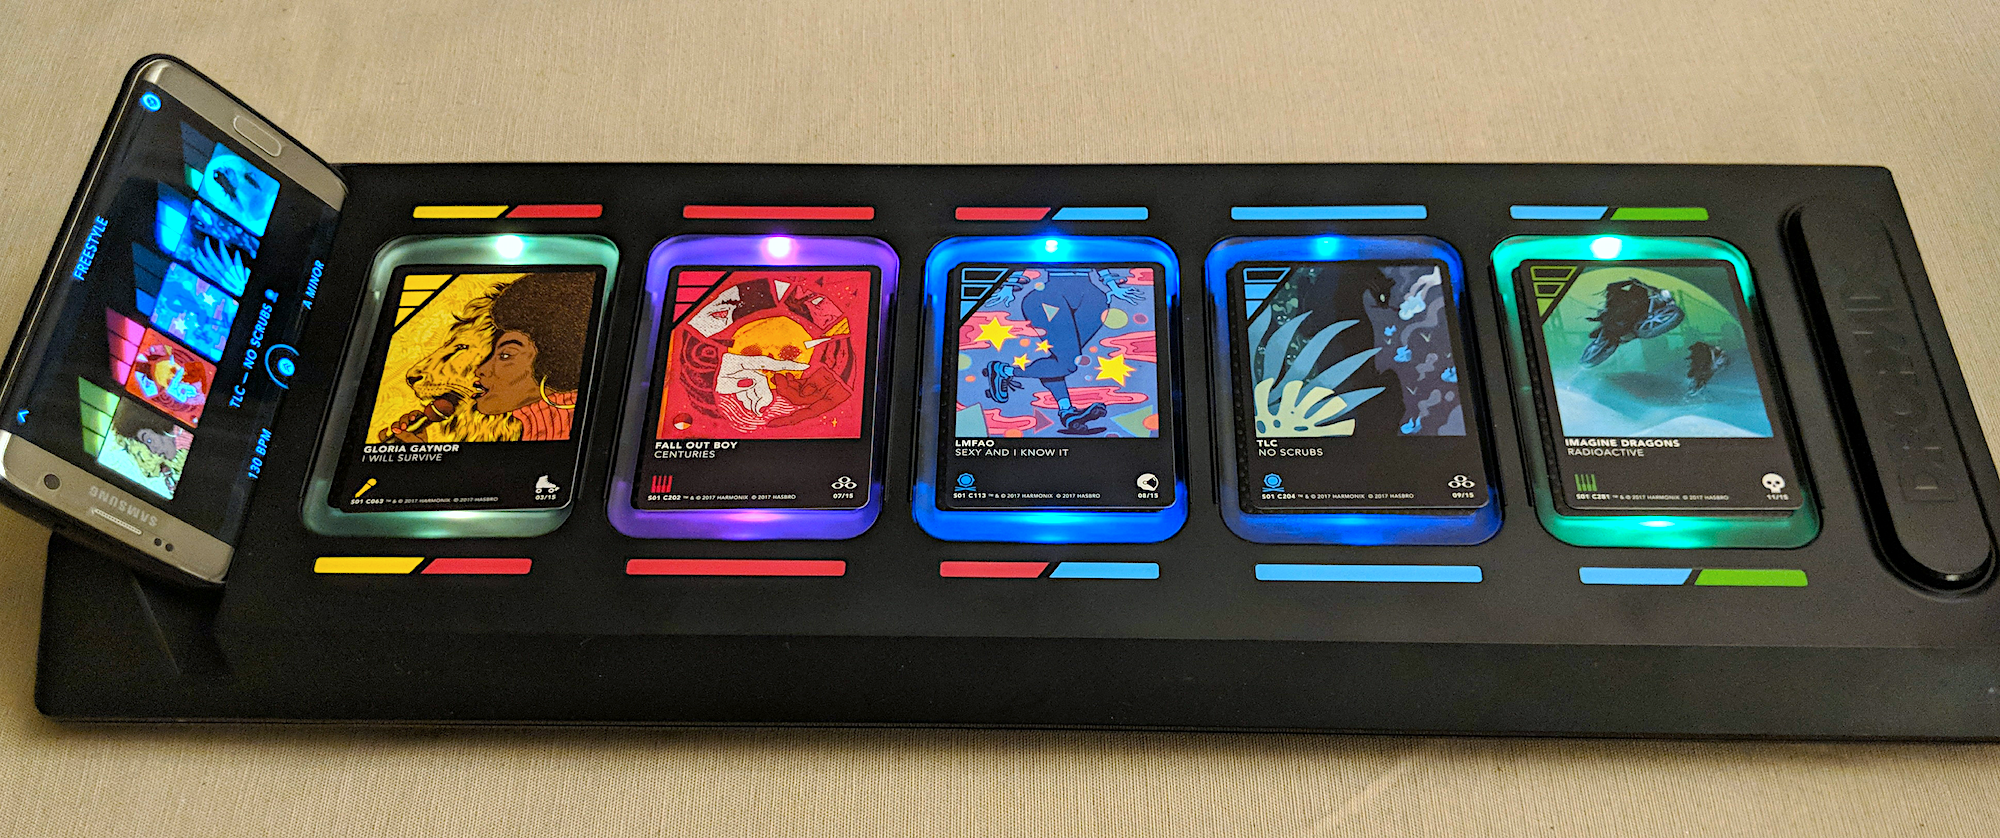 DropMix review: Unleash your inner DJ | Ars Technica